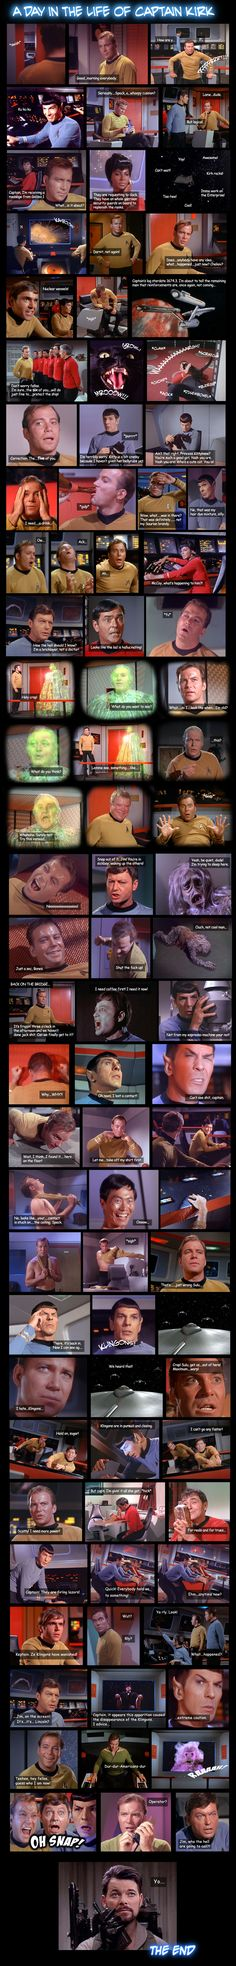 Star Trek: The Original Series by ~Walker82 on deviantART - a day in the life of captain kirk